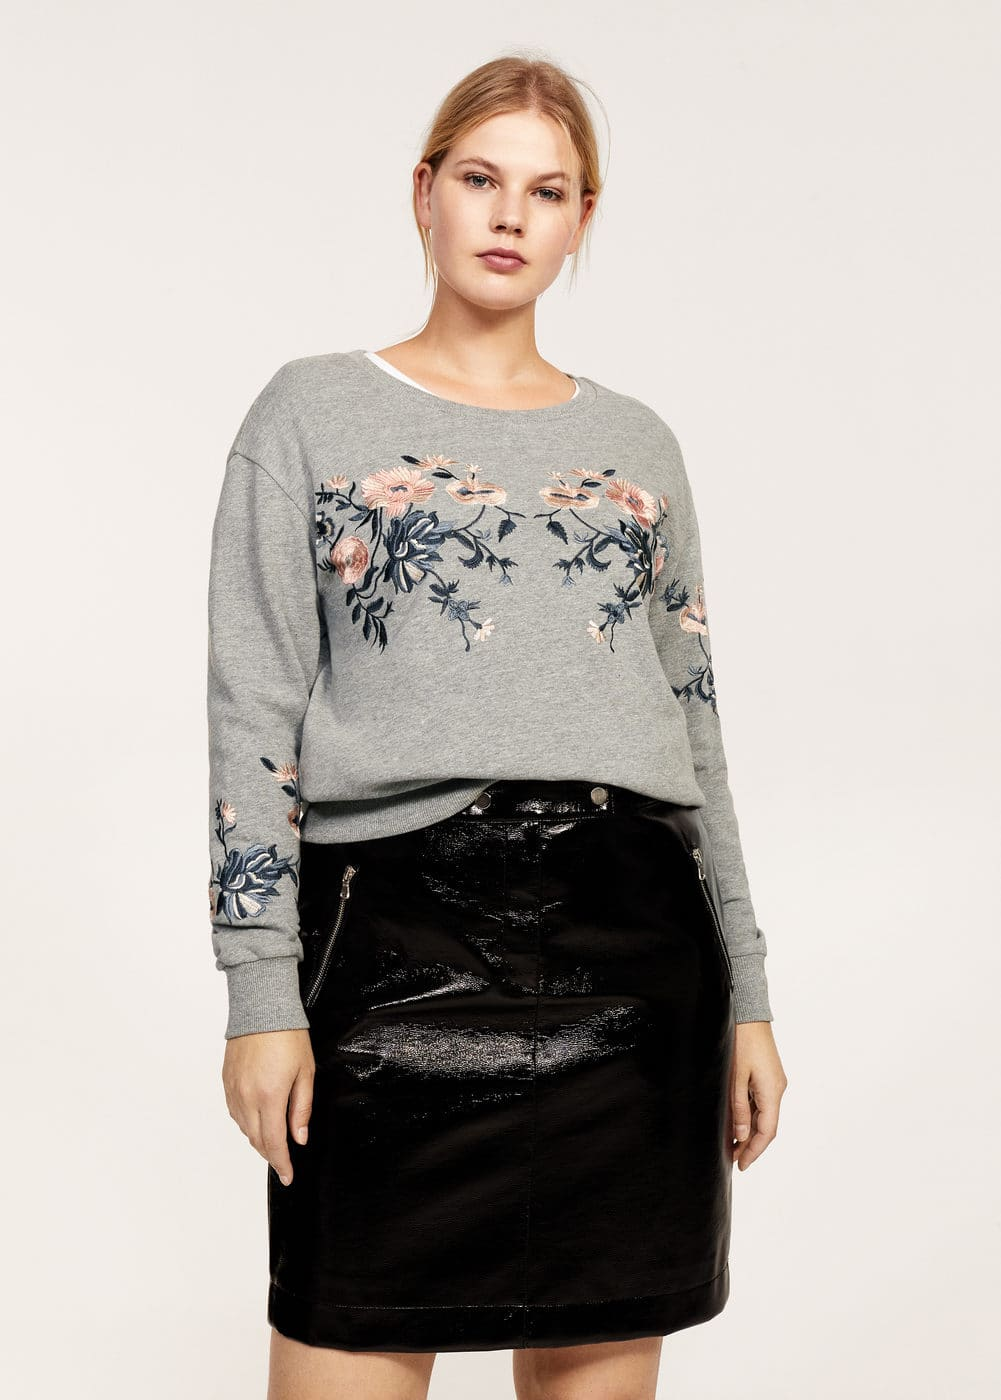 Floral embroidered sweatshirt | VIOLETA BY MANGO